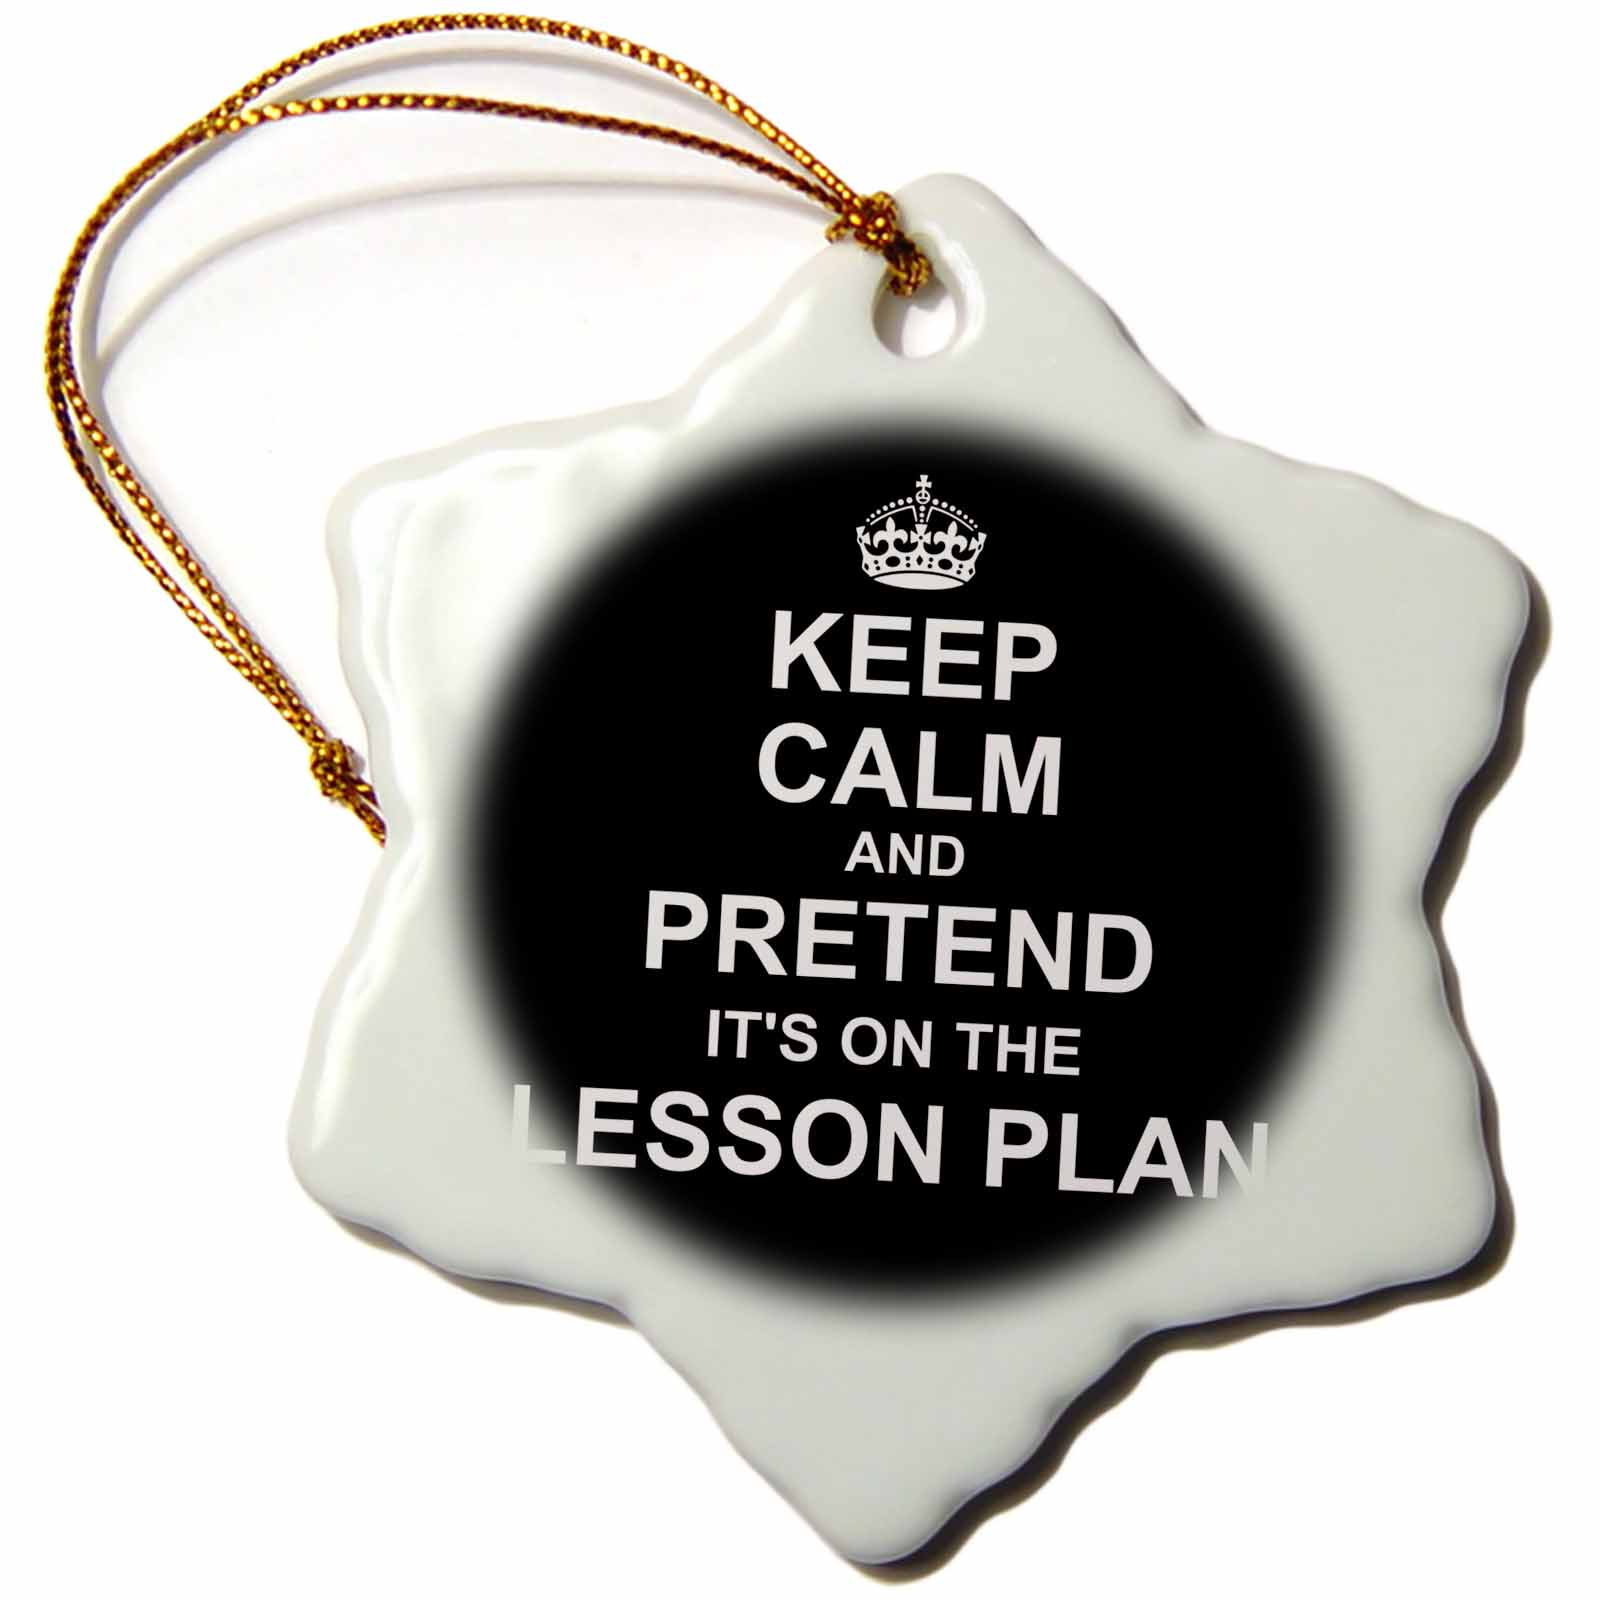 Supplier Generic 3d Rose Black Keep Calm And Pretend Its On The Lesson Plan Funny Teacher Gift, Snowflake Ornament, Porcelain, 3 - inch